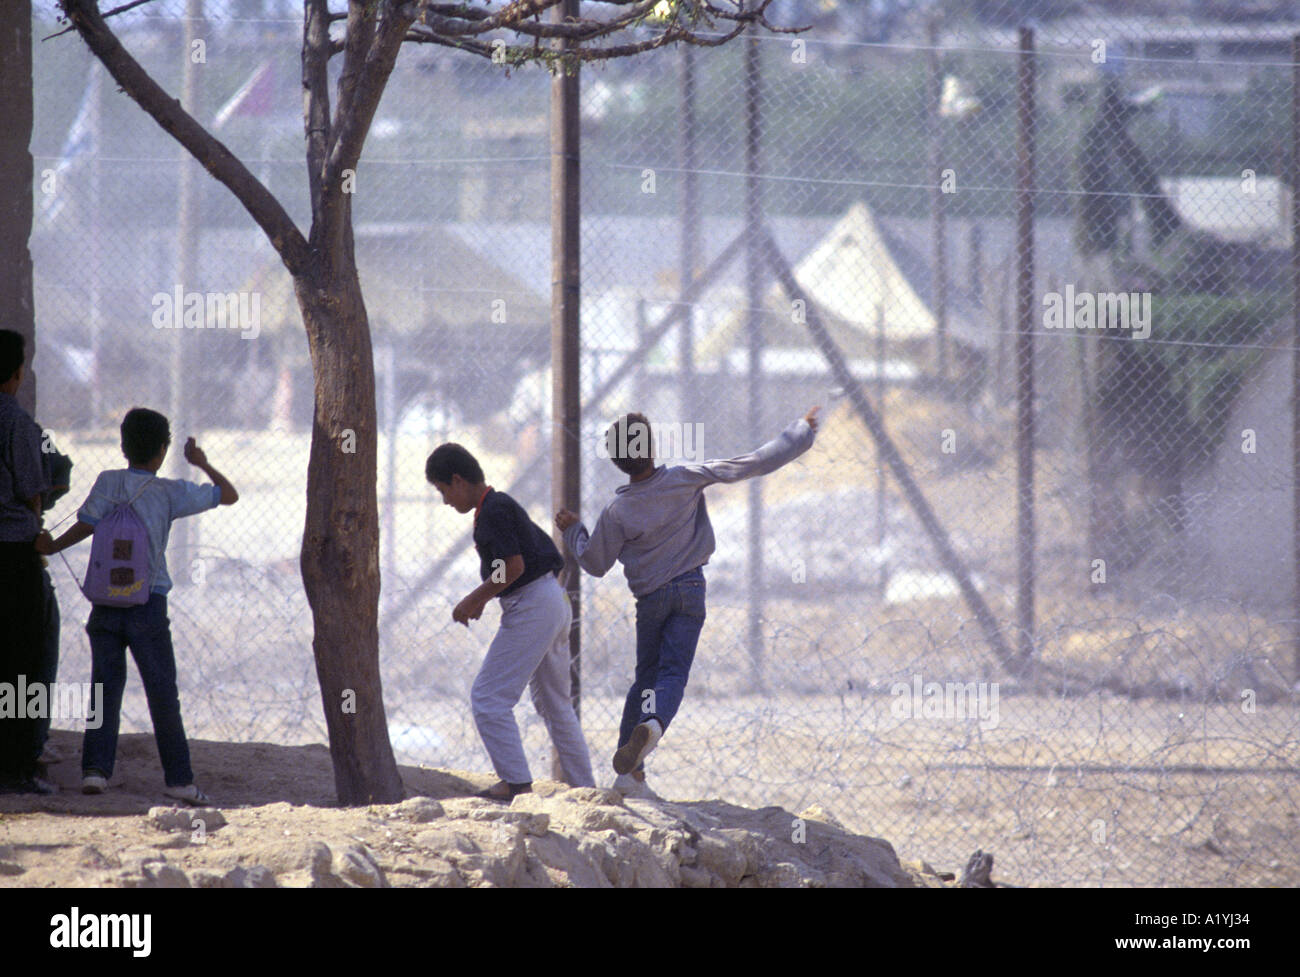 PALESTINIAN BOYS THOWING ROCKS INTIFADA ON THE GAZA STRIP 1992 1992 - Stock Image